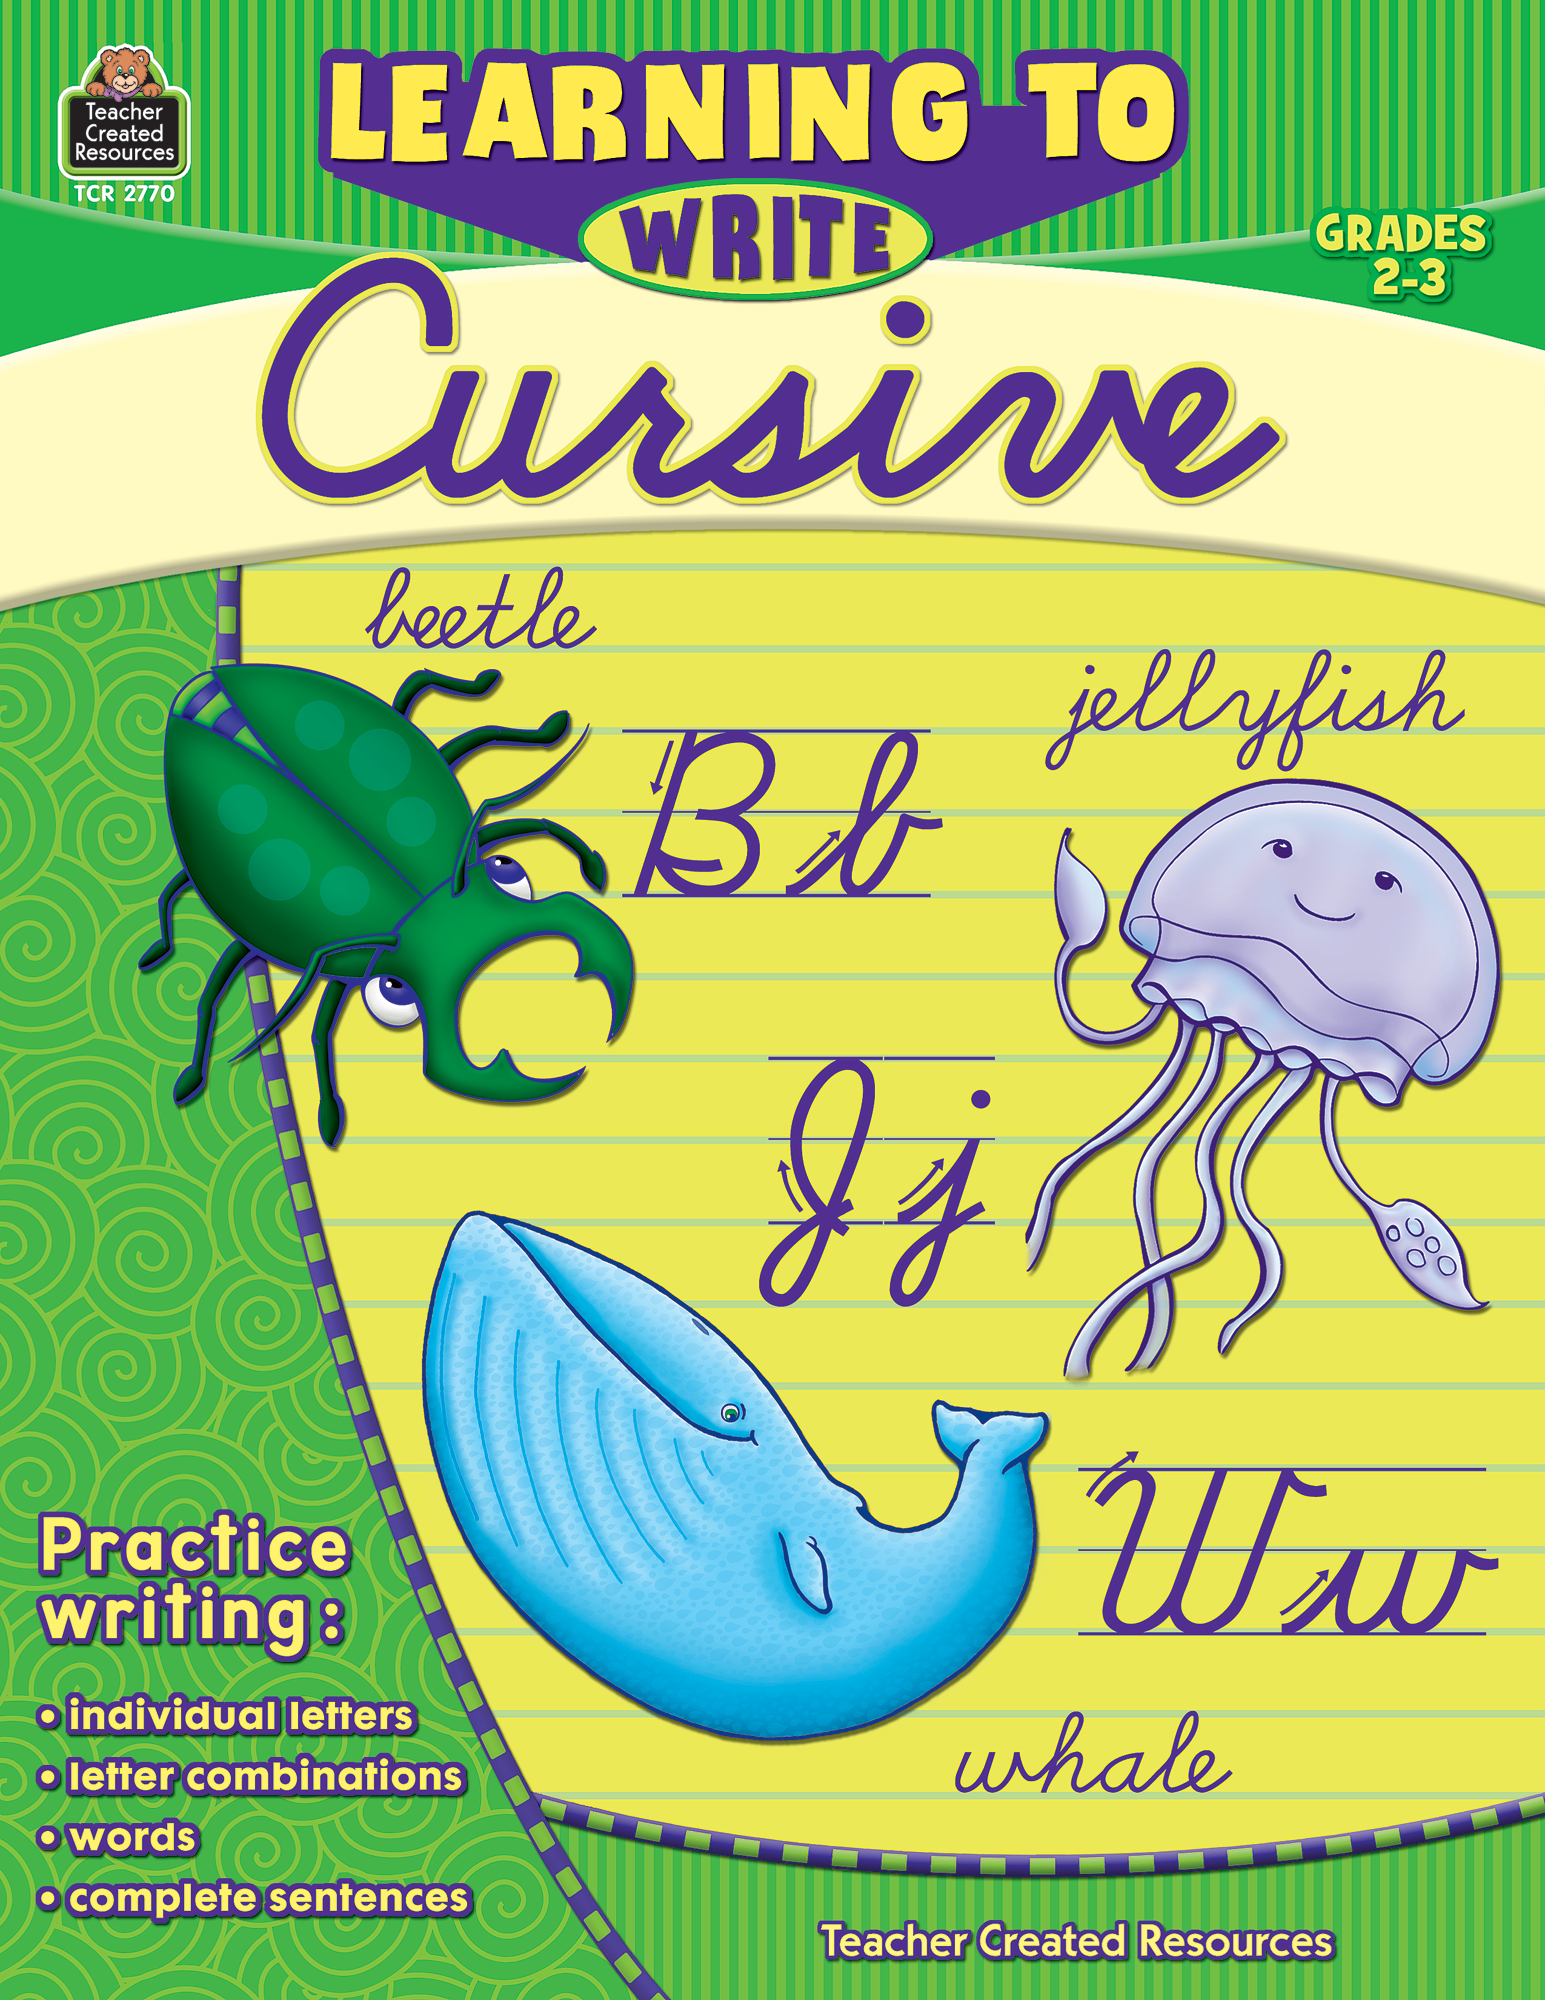 learning to write cursive Find and save ideas about teaching handwriting on pinterest | see more ideas about kids learning activities learning to write the cursive alphabet can be fun check out these awesome activities for kids working on their handwriting.